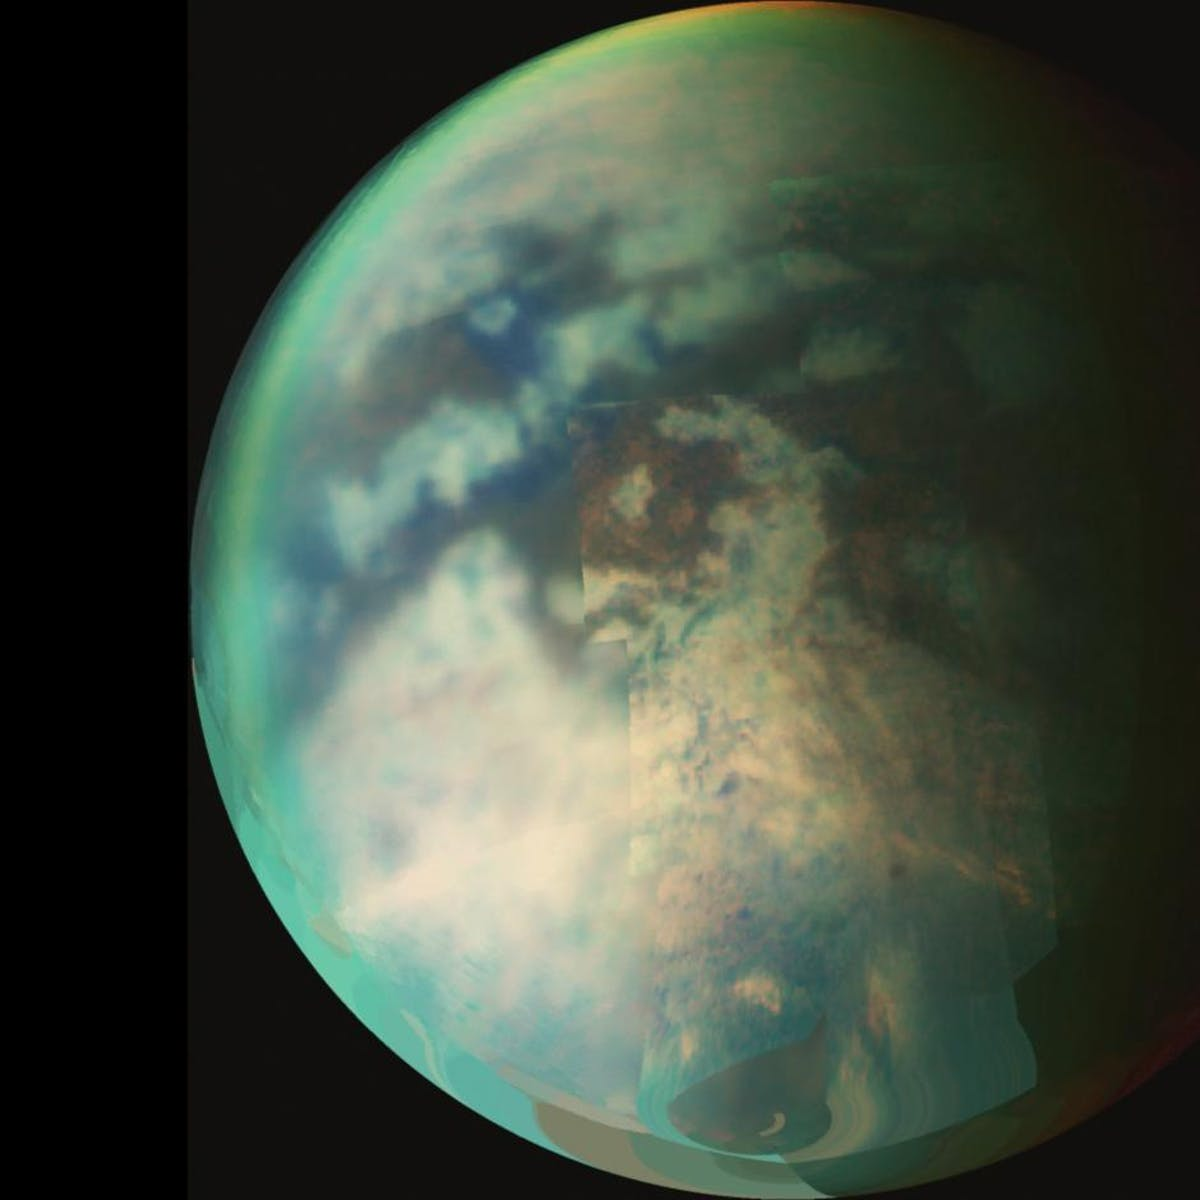 Titan's lakes may have been formed by exploding nitrogen bombs